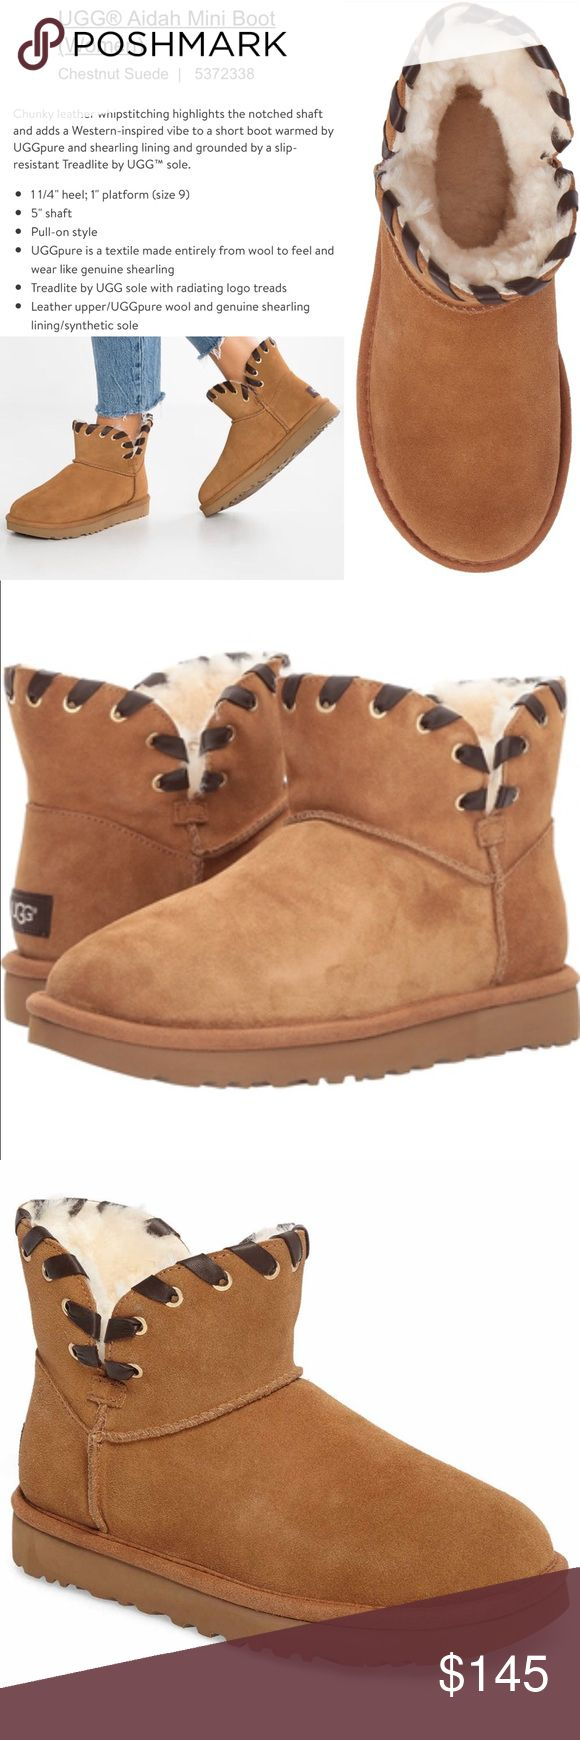 """🆕UGG®️Women's Aidah Mini Boot Chestnut Suede Sz 8 Brand New in Box !!! WOMENS """"Aidah"""" Mini Ugg Boots in Chestnut Suede! Size 8. Never Worn. Brand New in Original Ugg Box & Packaging ! Purchased 2 pairs by accident! MRSP $189 !! UGG Shoes Ankle Boots & Booties"""